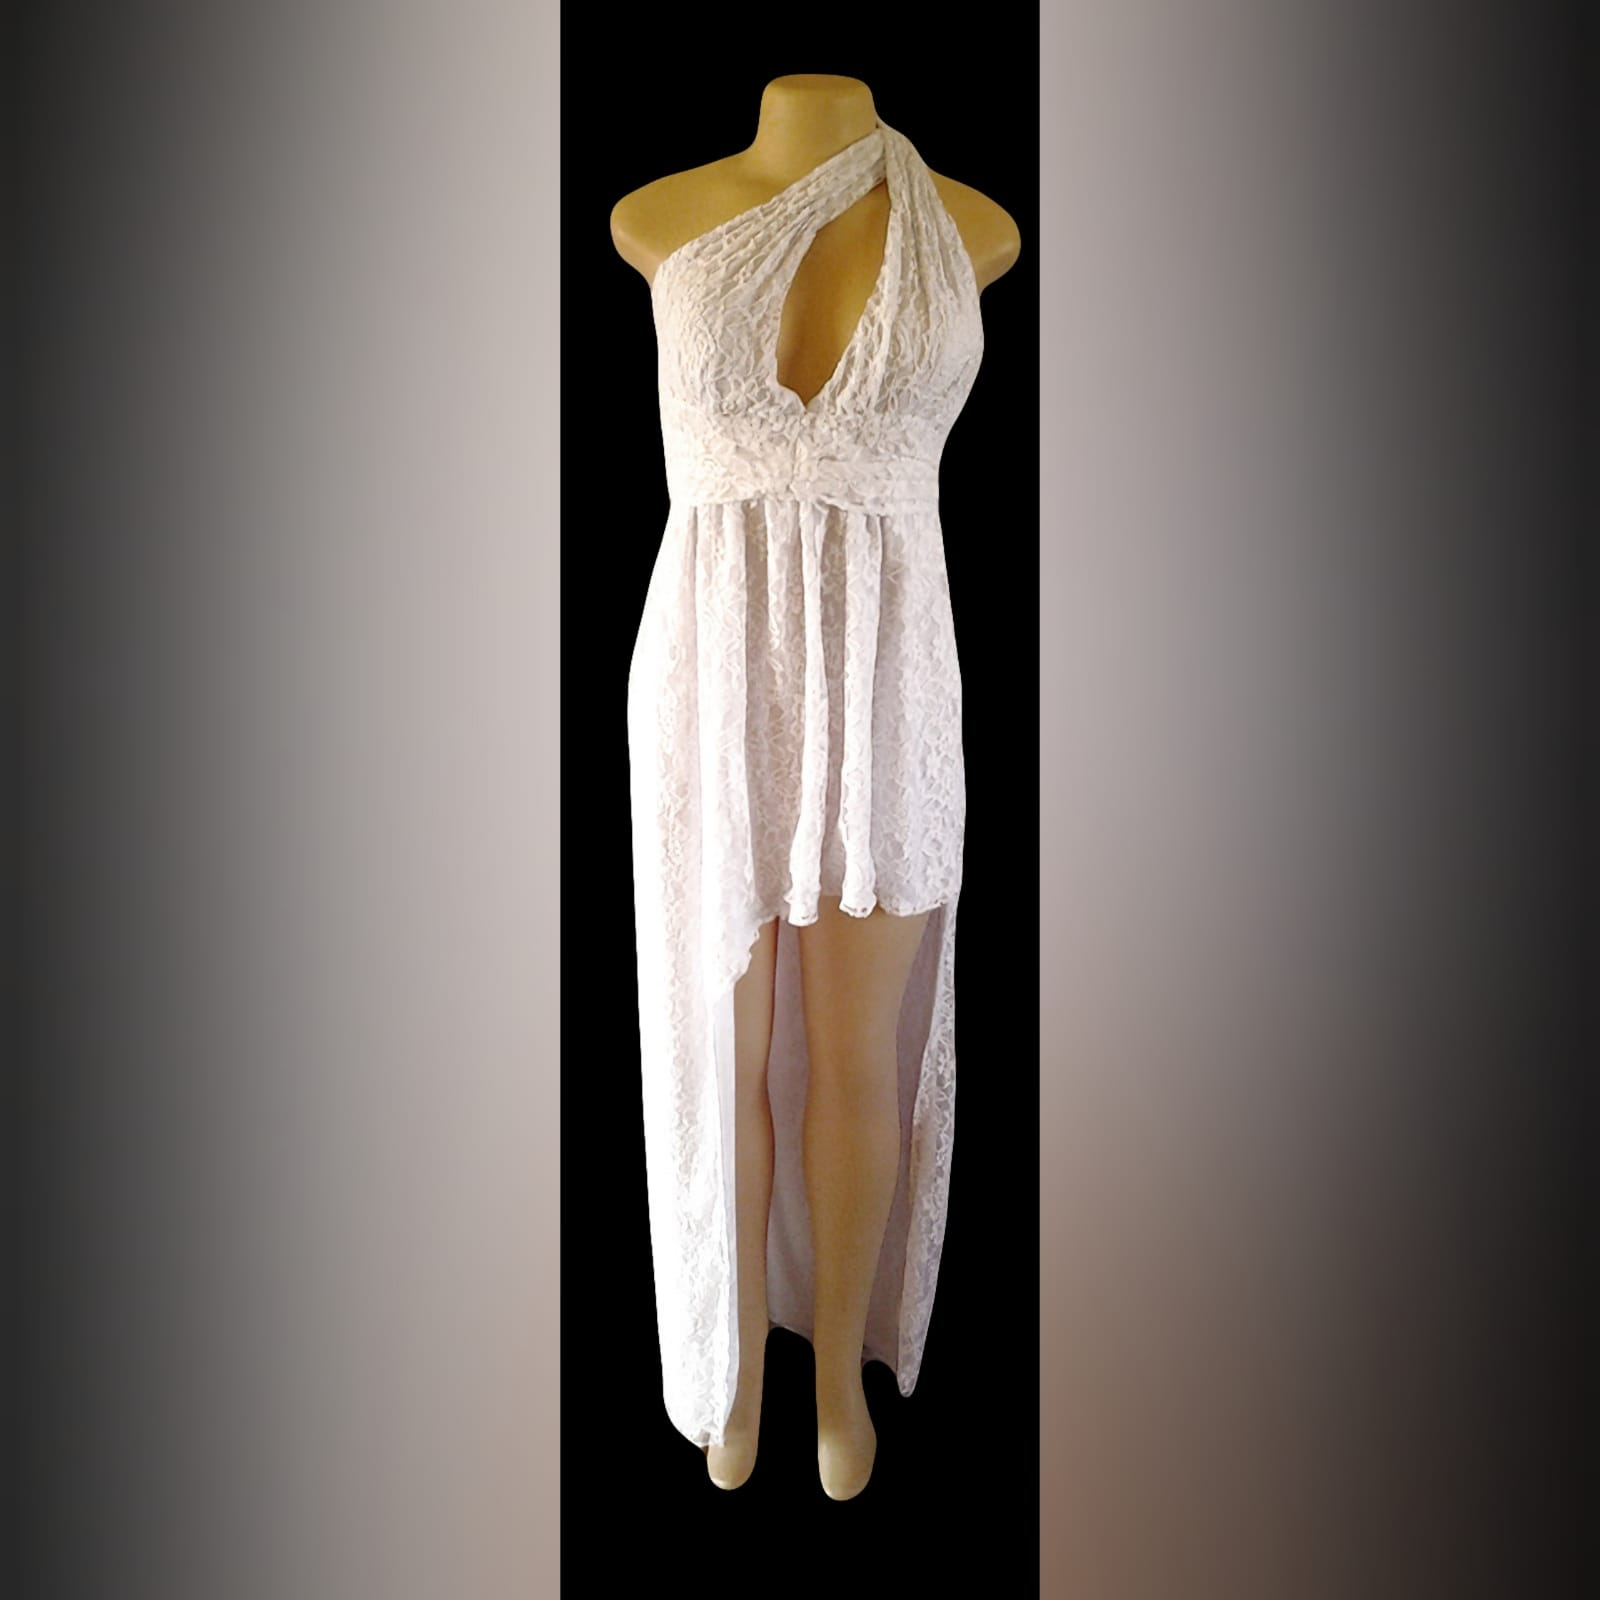 White side high low lace party dress 4 white side high low lace party dress with a cleavage opening and a ruched belt.